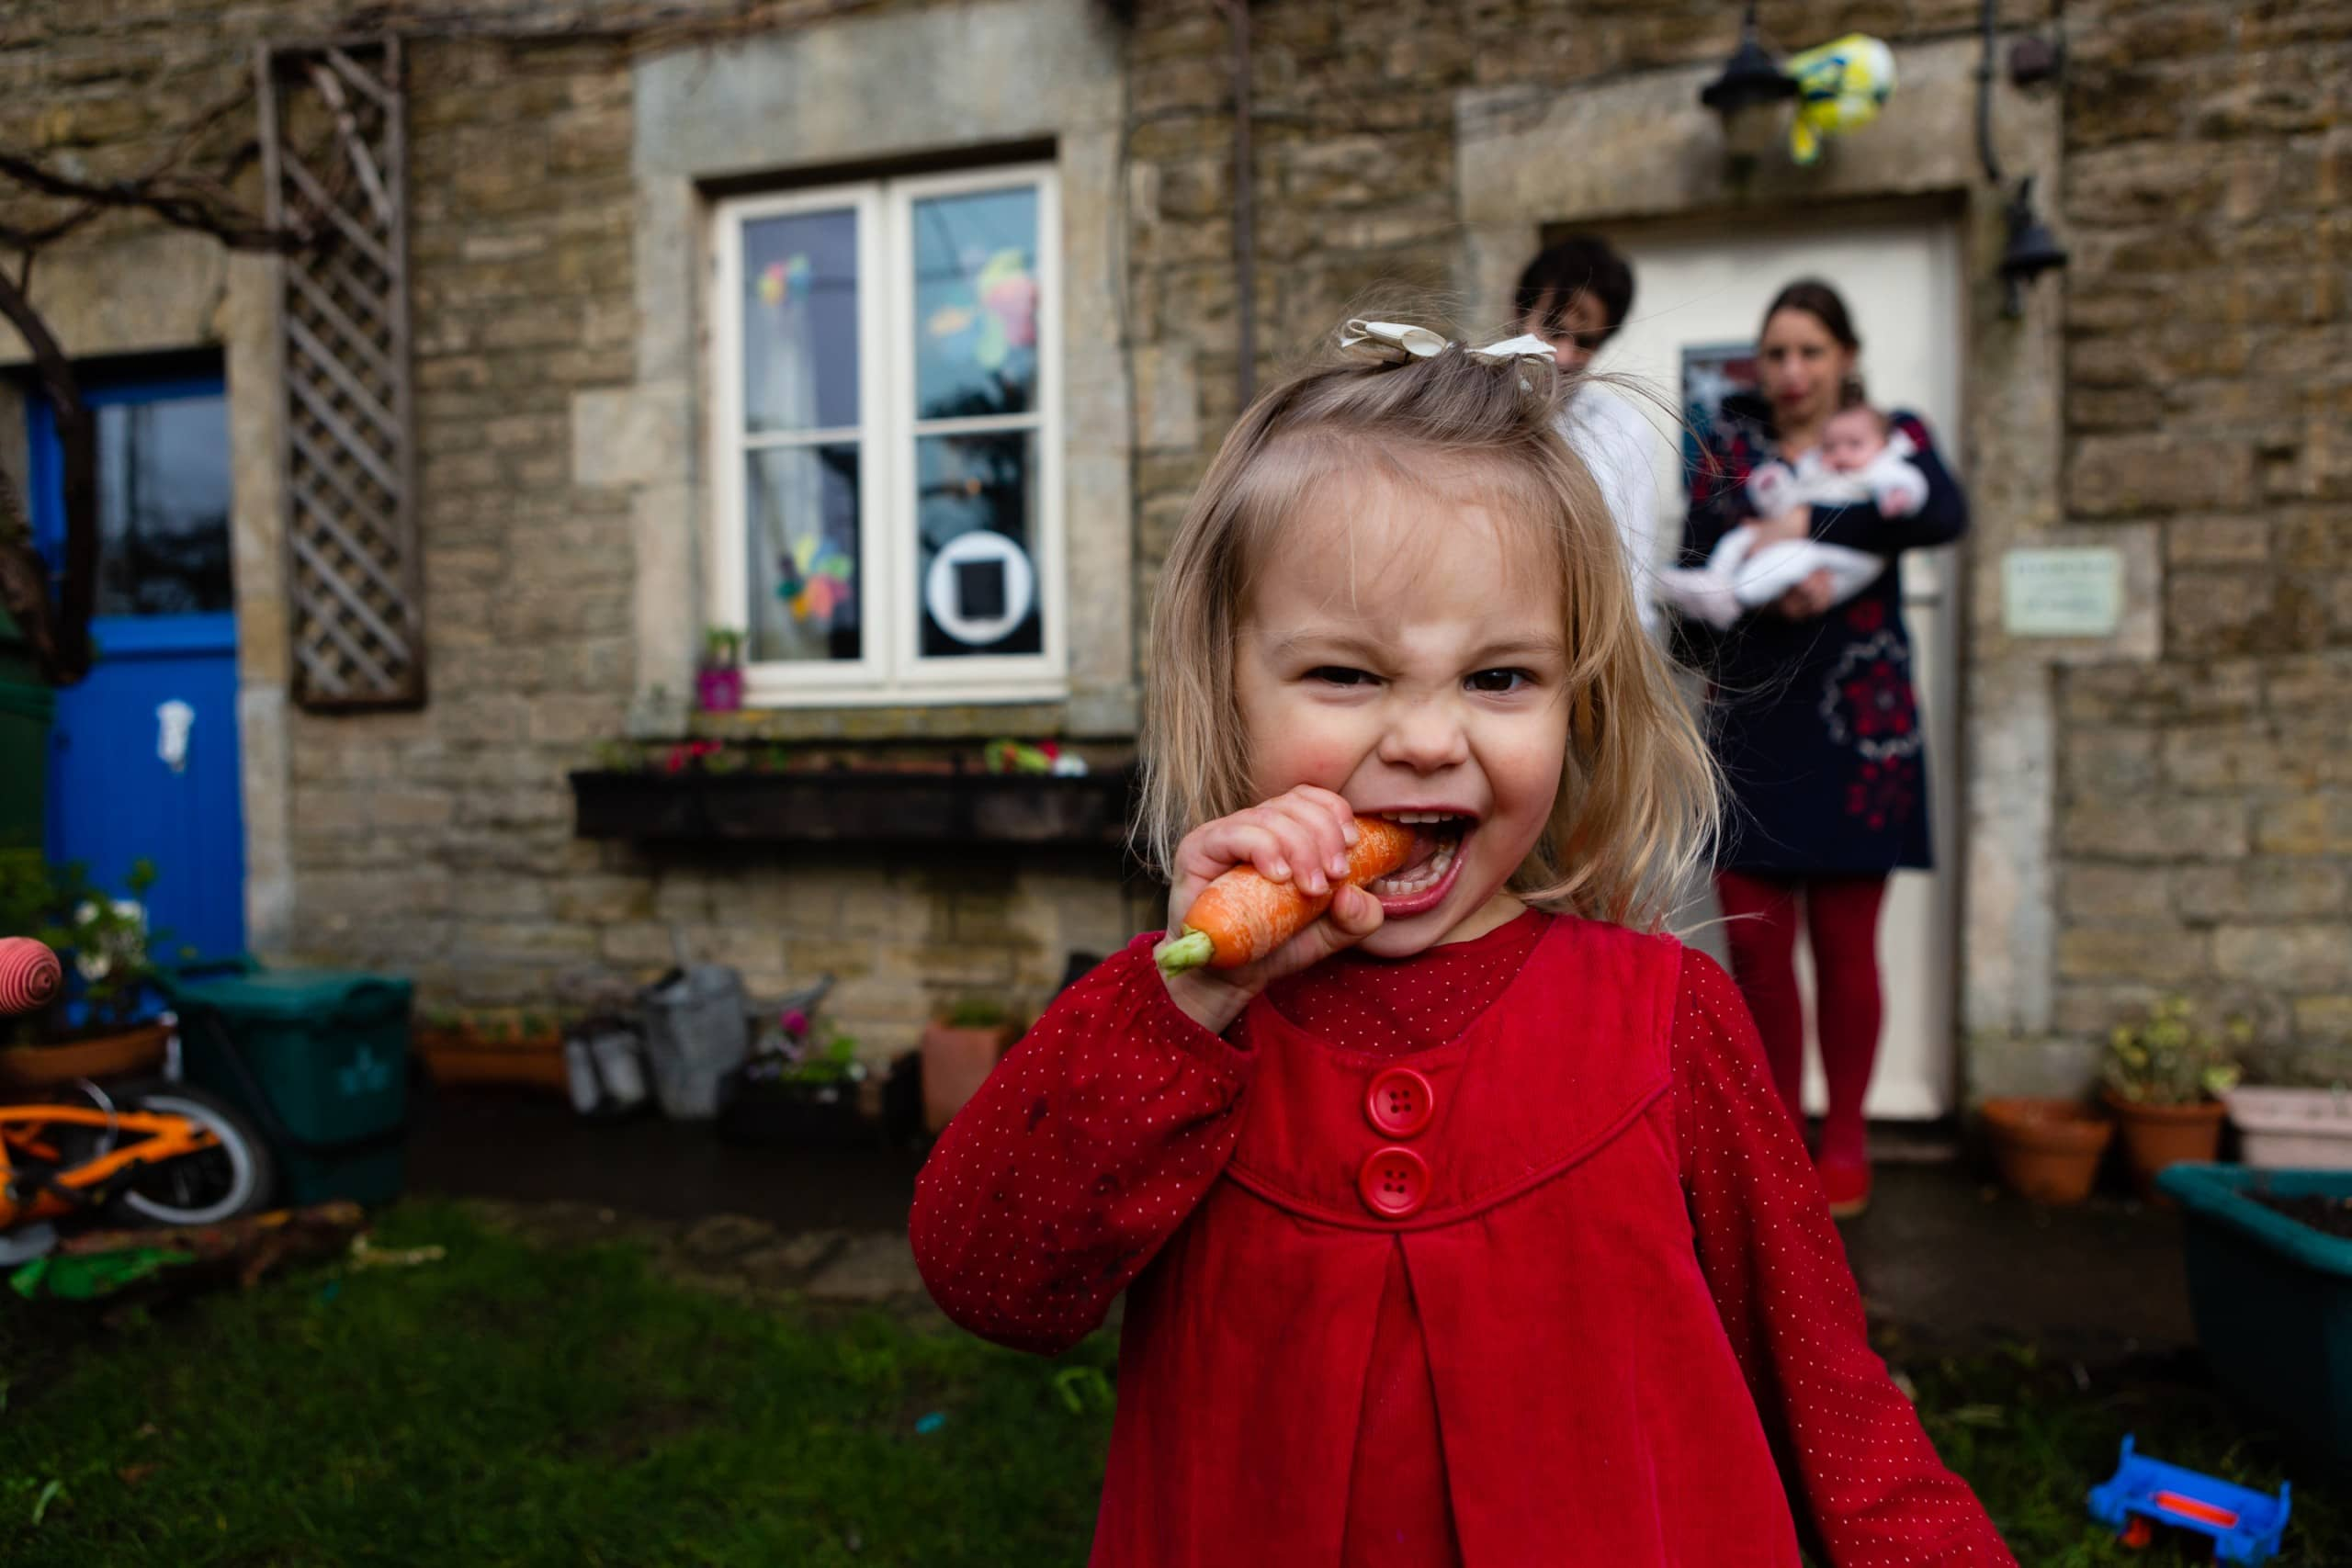 Little girl eats a carrot whilst looking at the camera